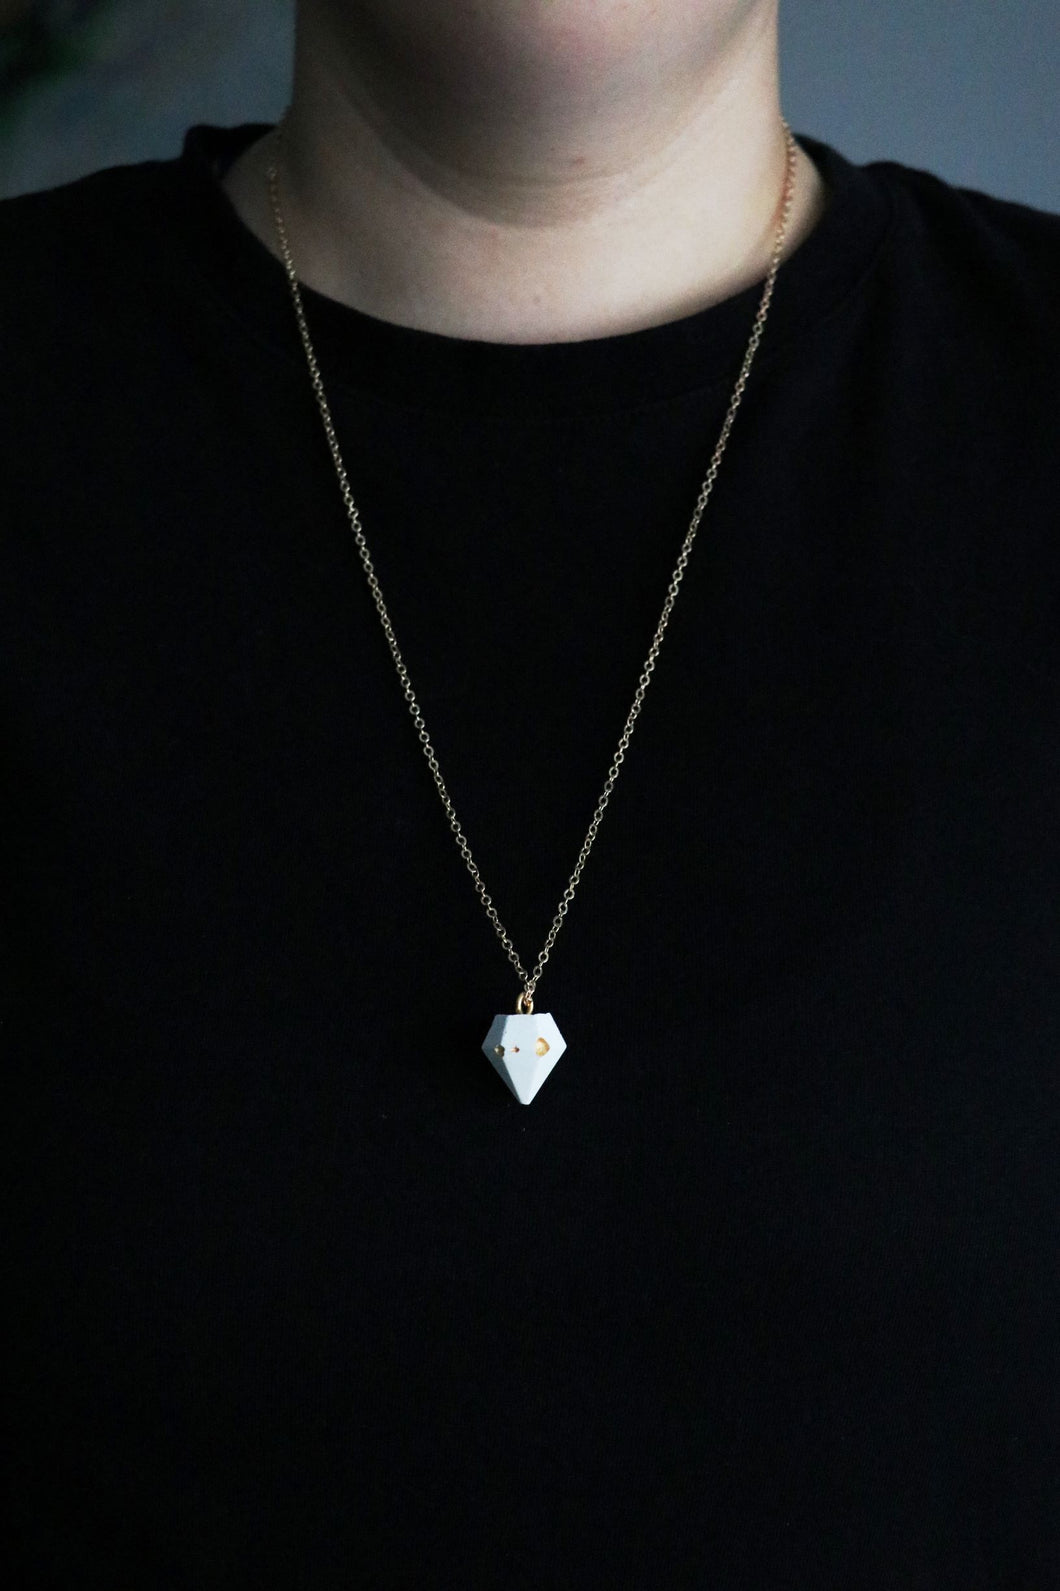 Concrete Diamond Necklace